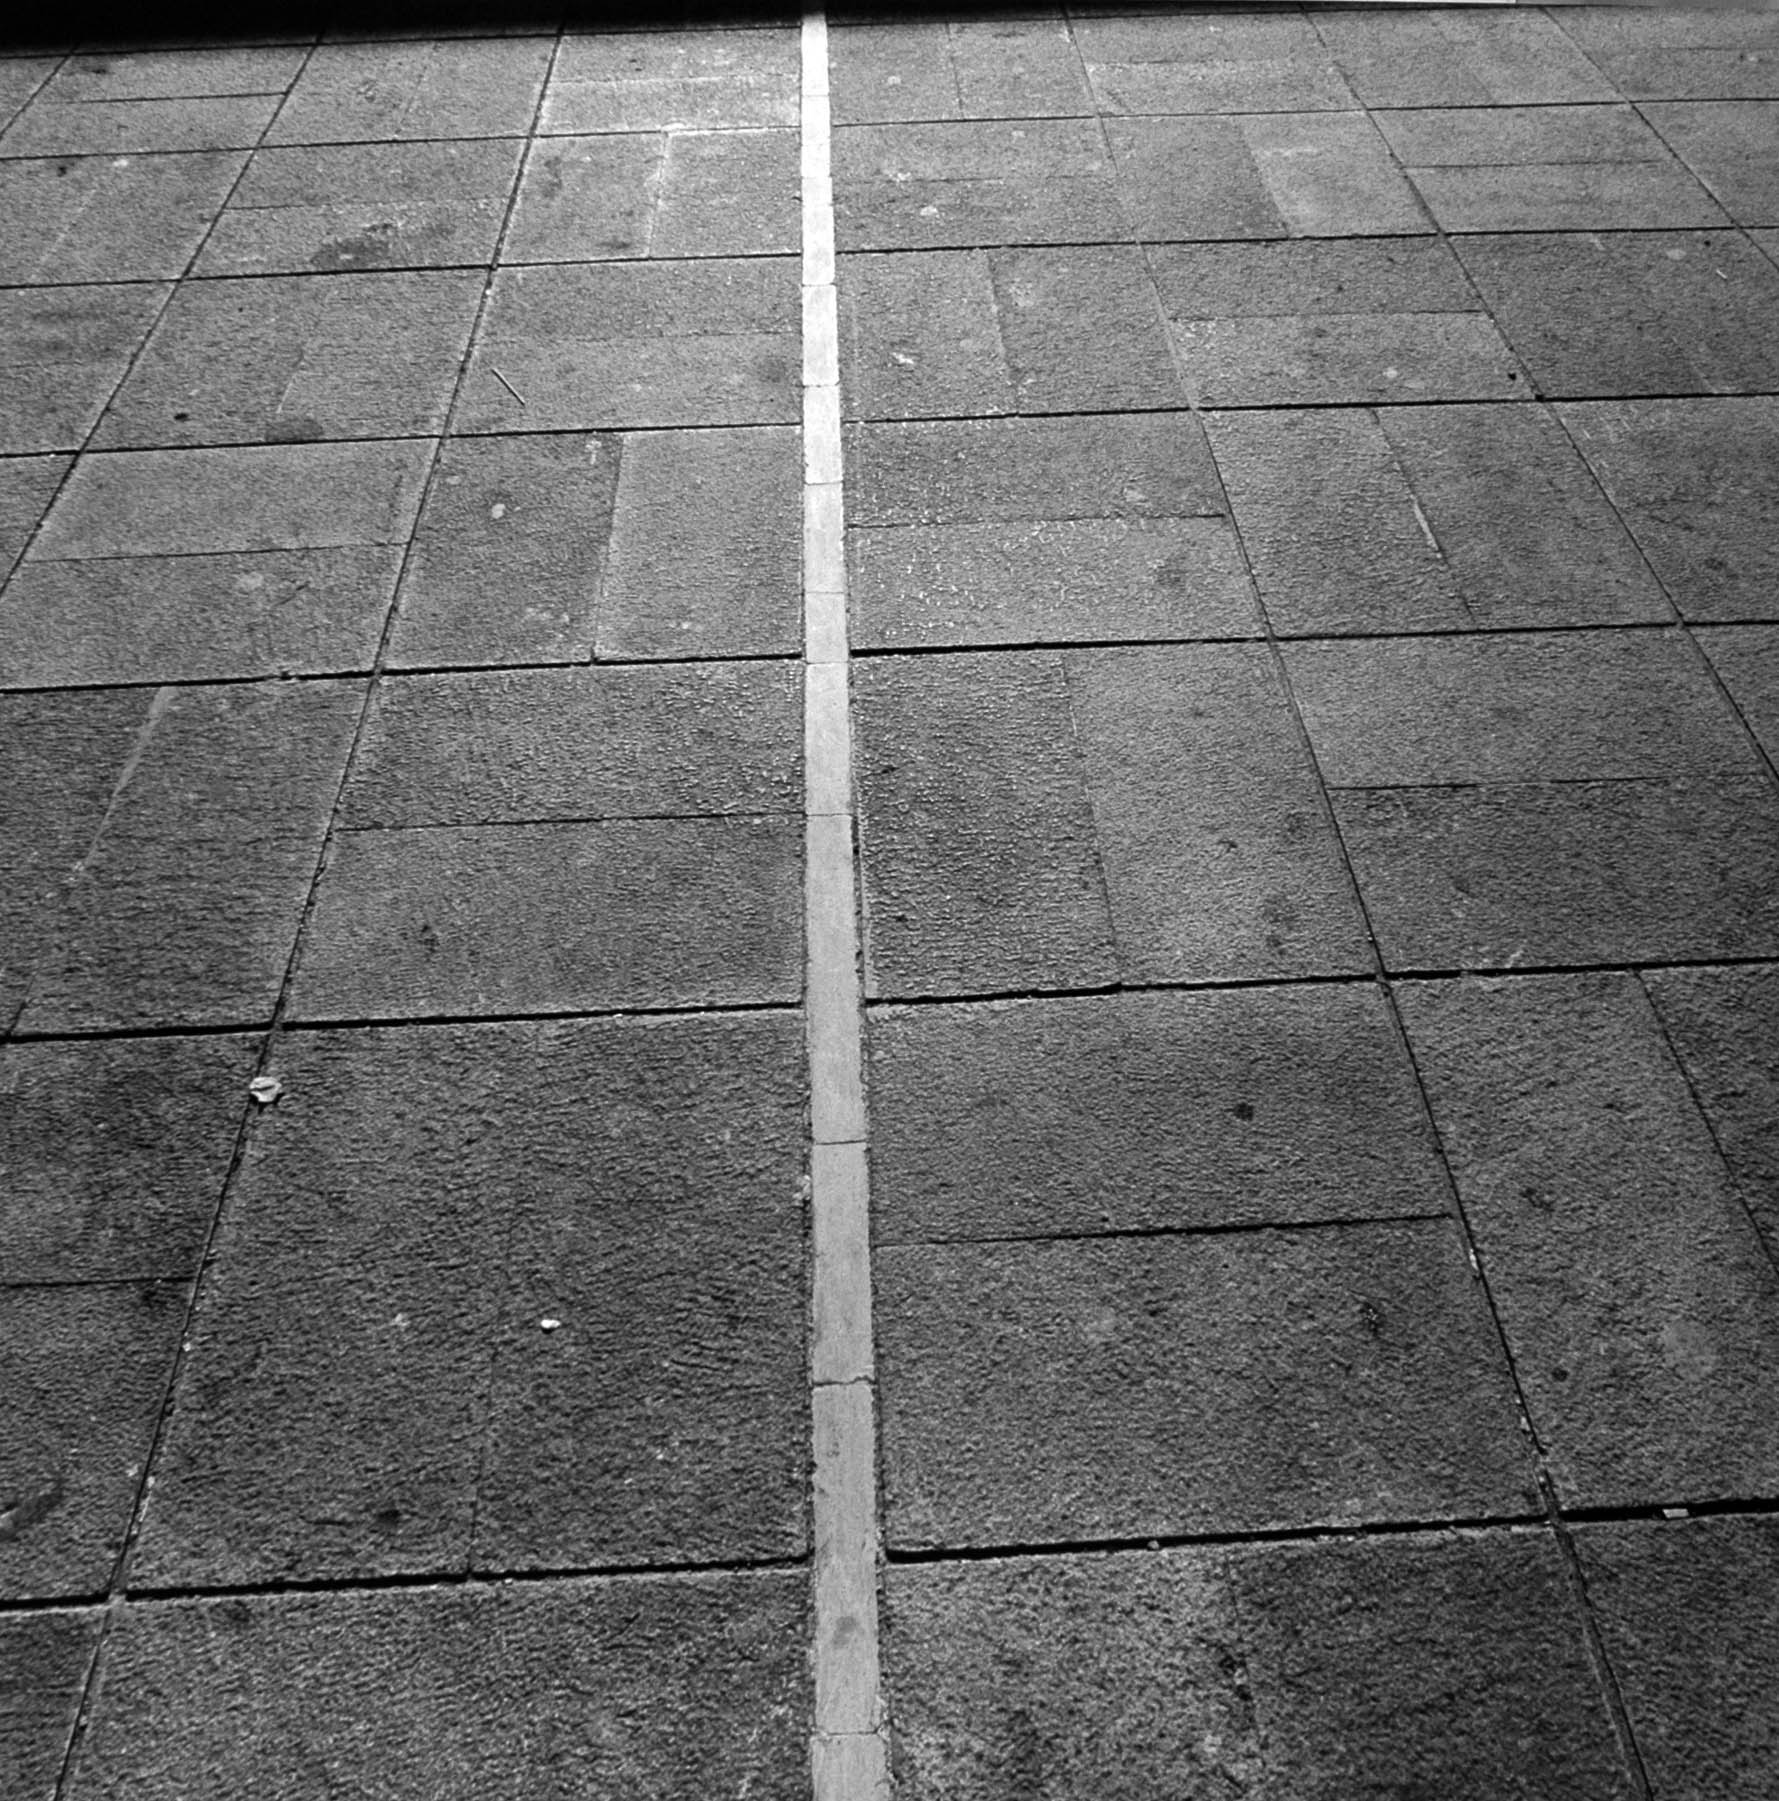 Improbable Boundaries (Equator at Mitad del Mundo) 38-07